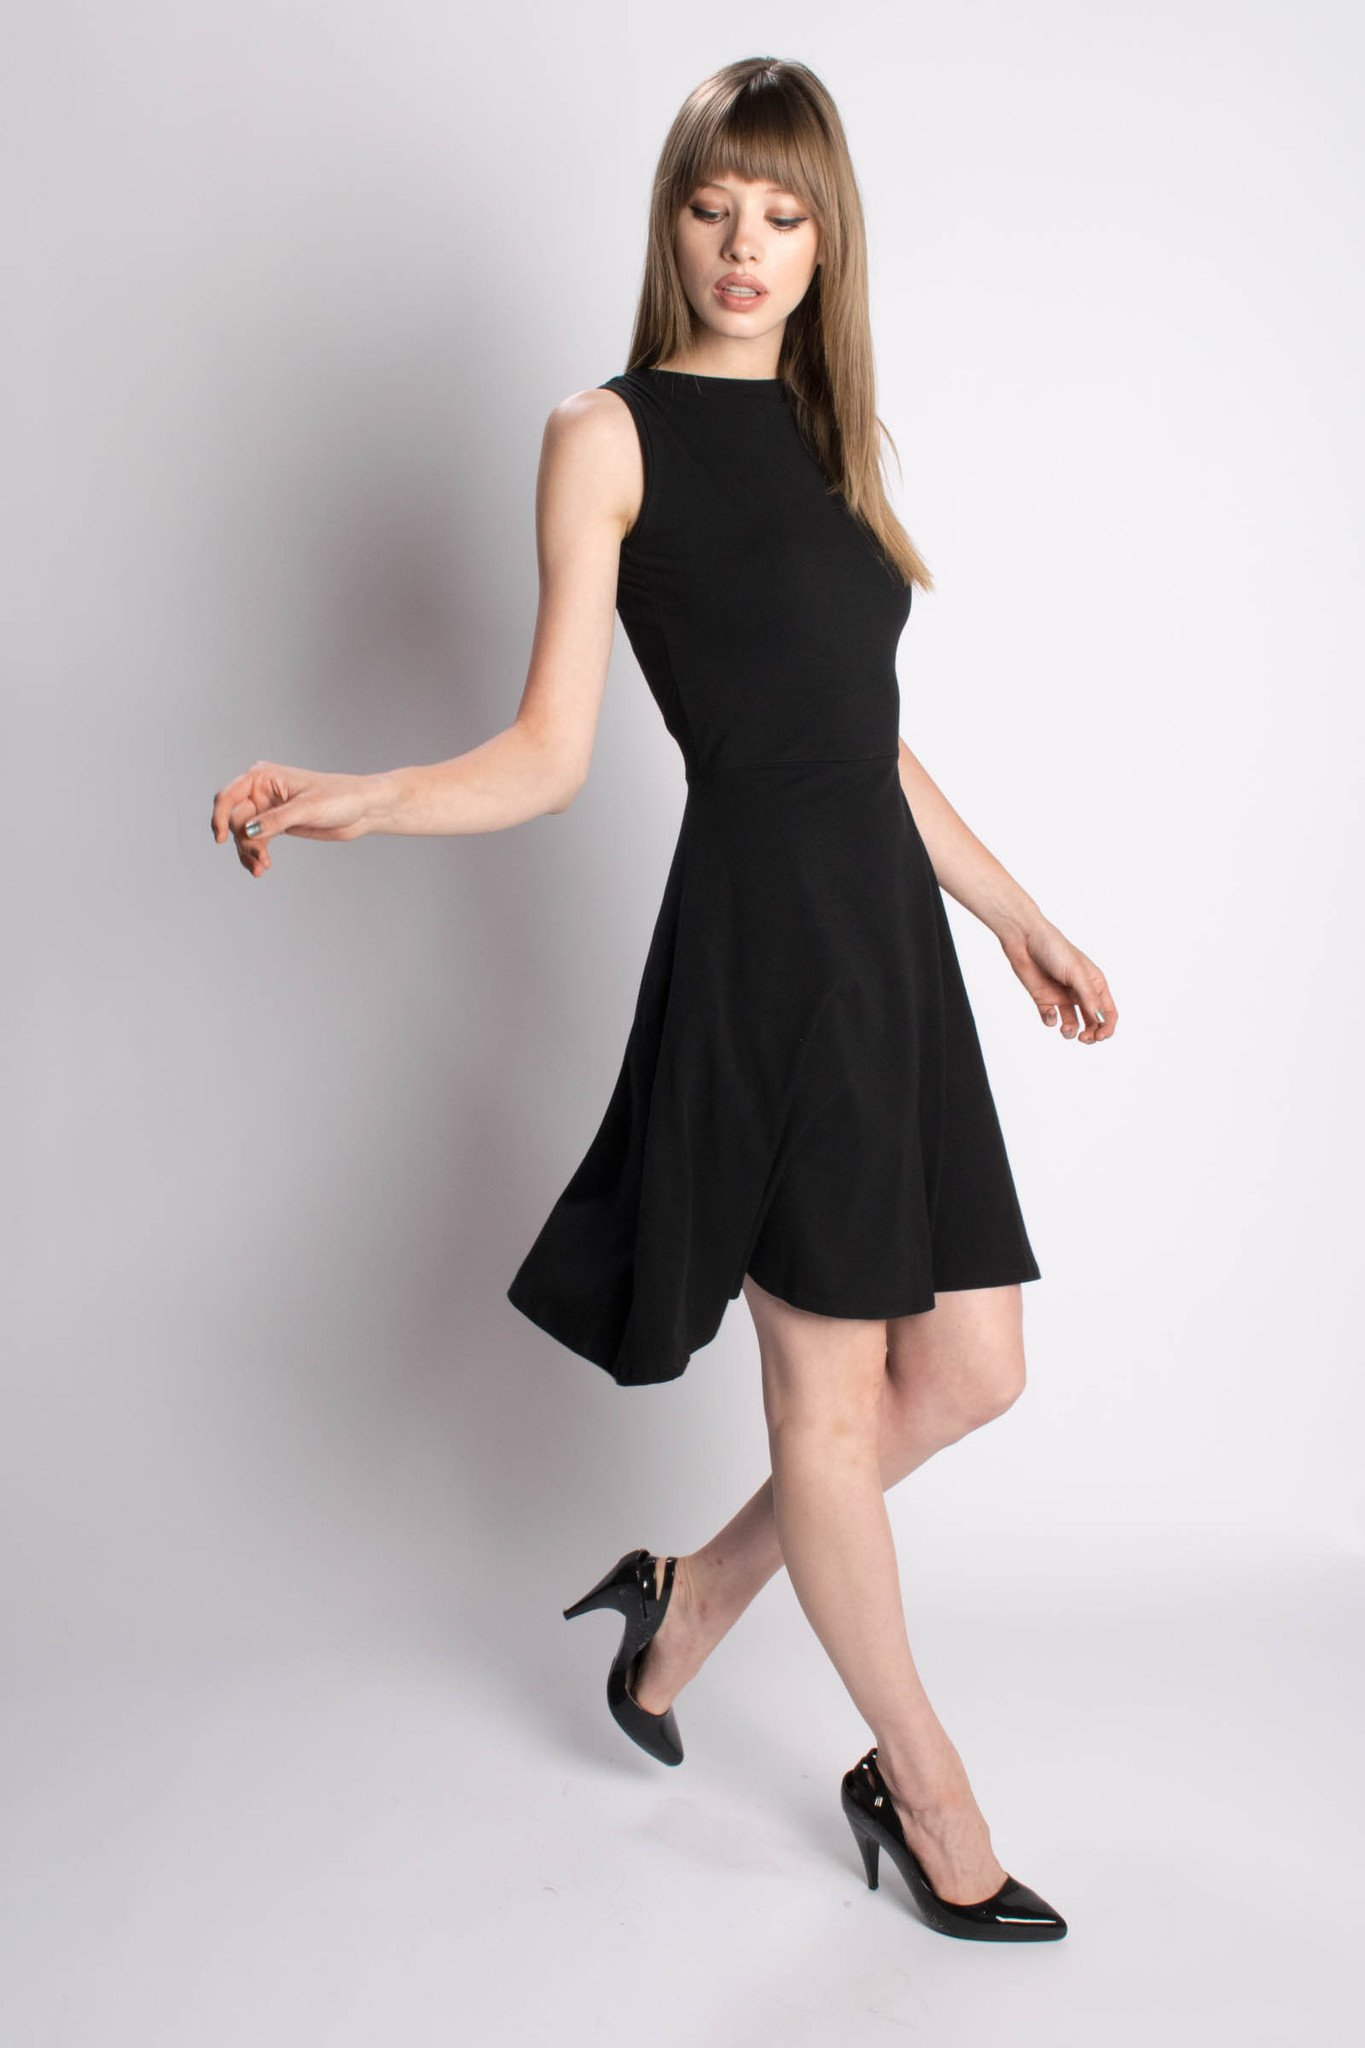 Eco friendly dress, made ethically from organic cotton - Maggie's Organics fair trade brand from Bead & Reel.